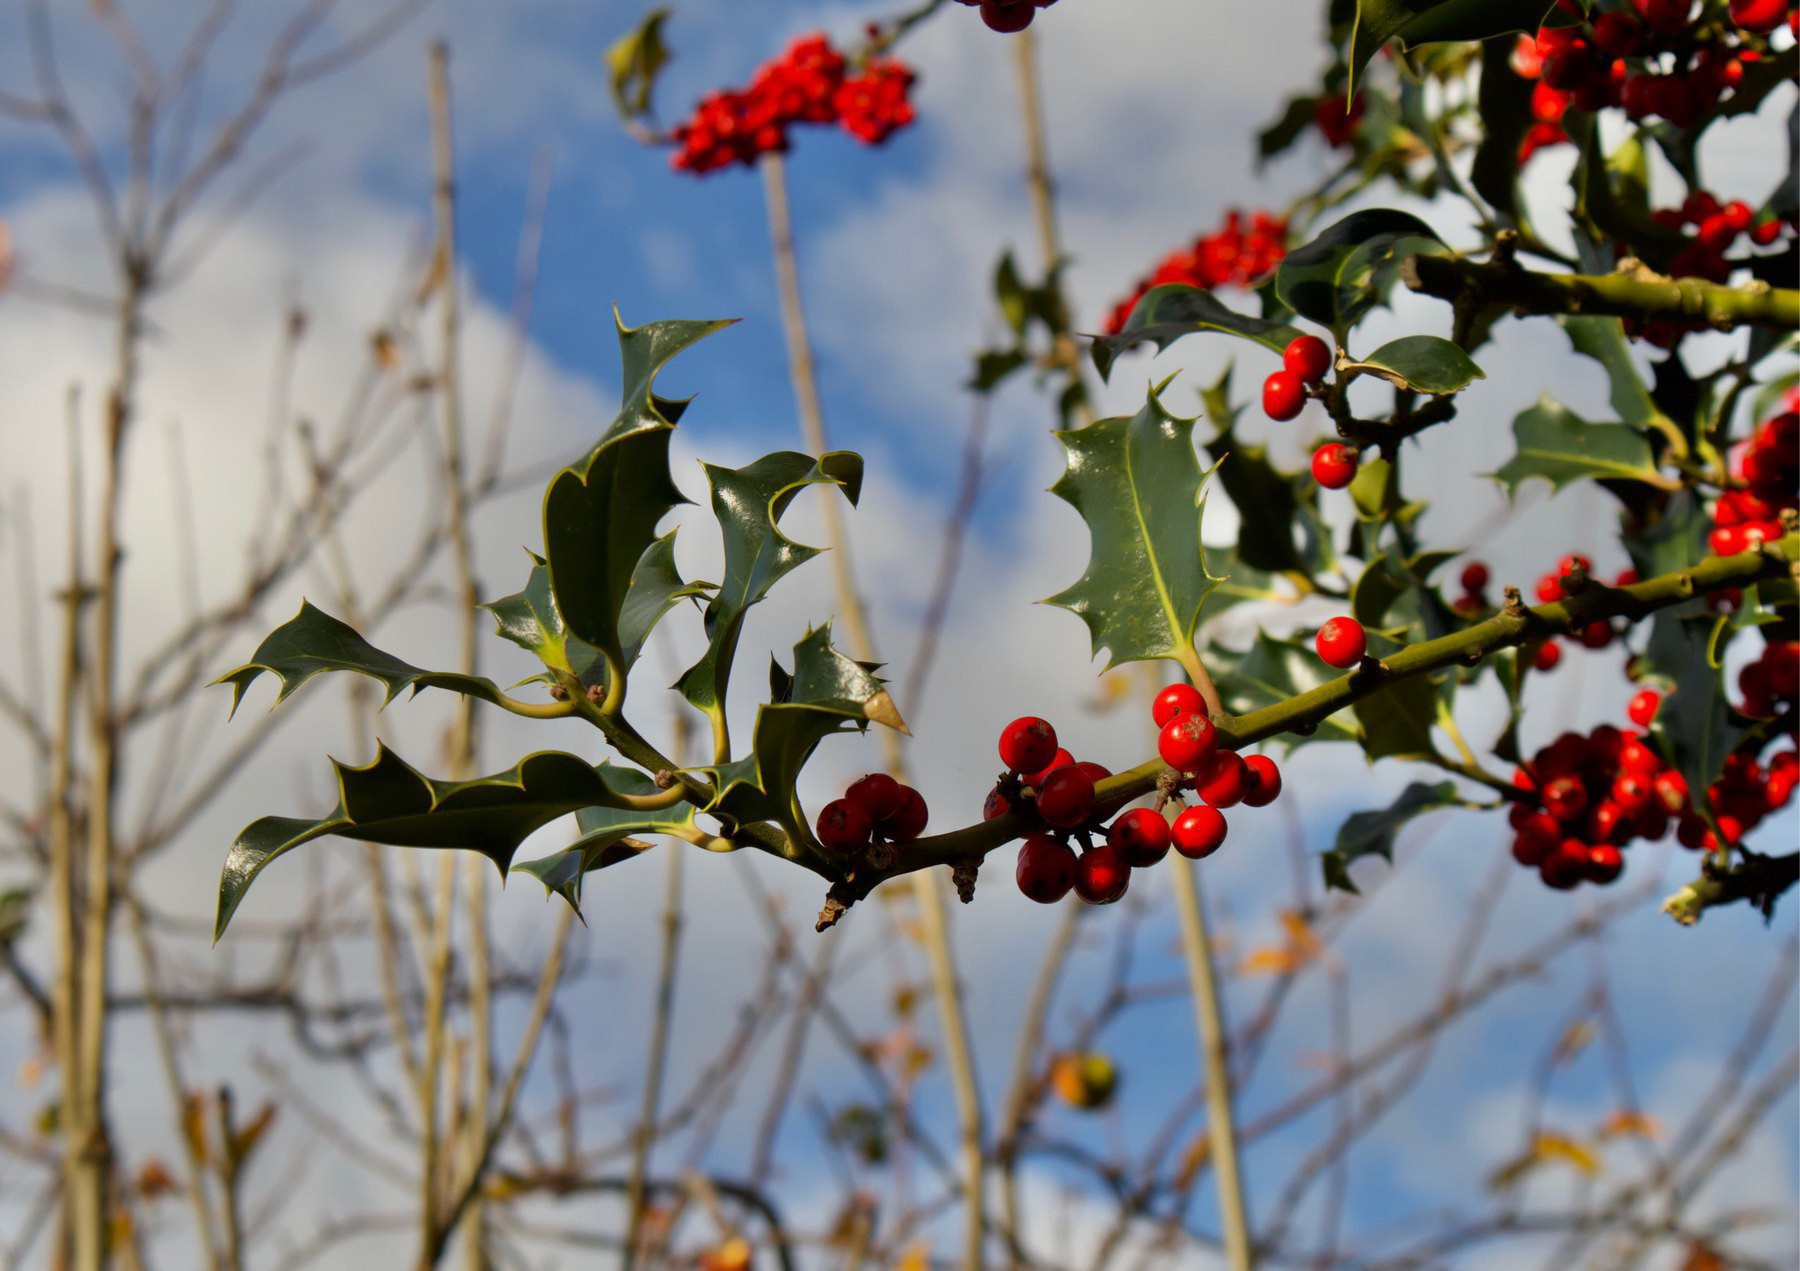 Holly growing by the community centre in Shoreham-by-Sea